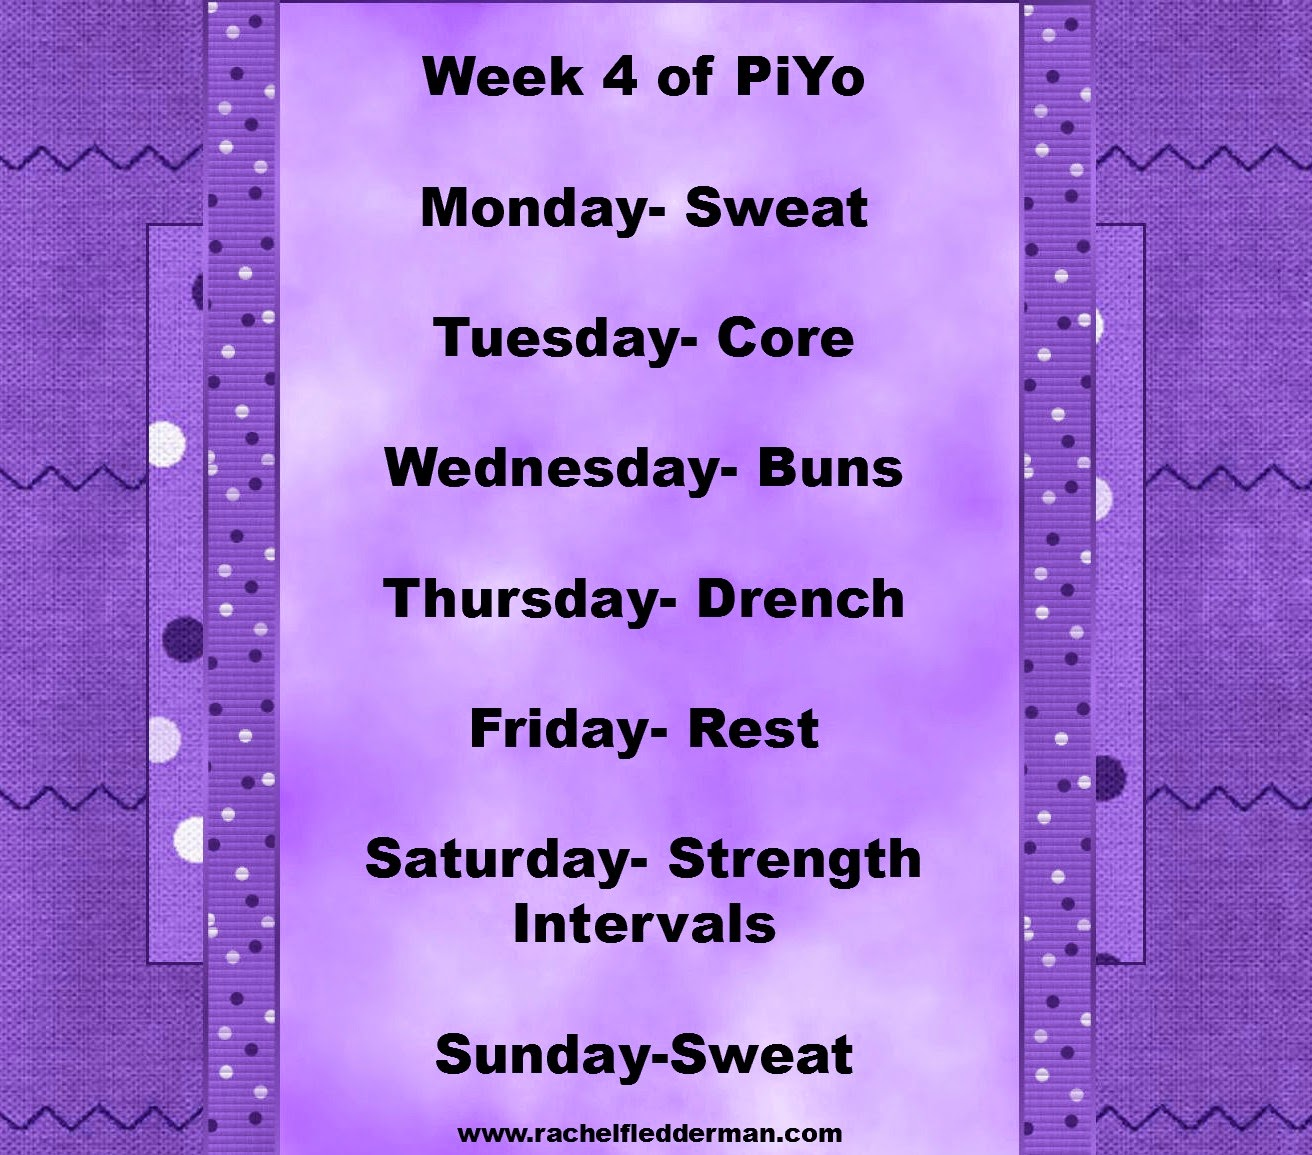 Week 5 of PiYo